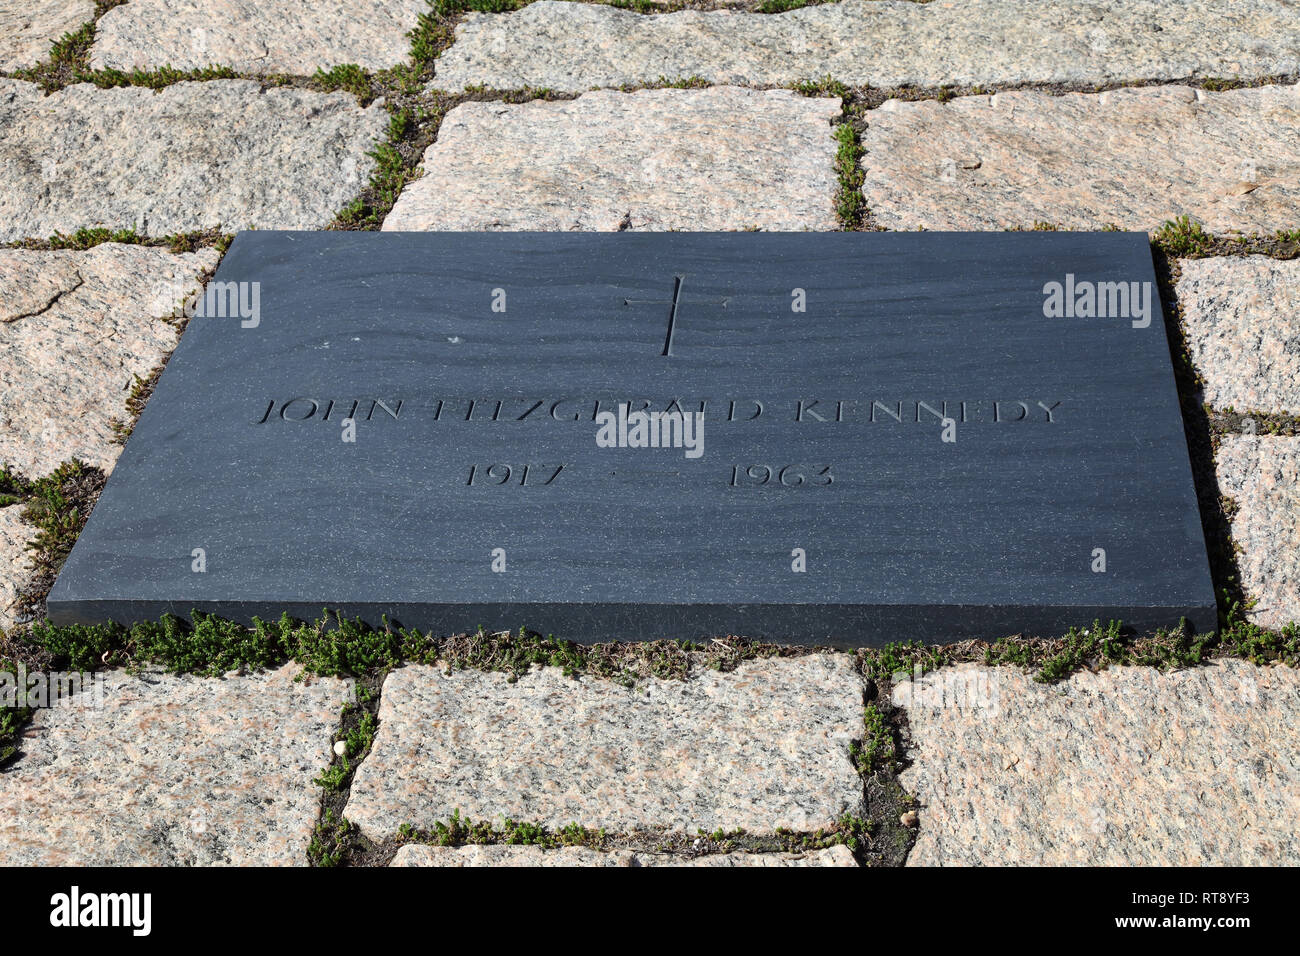 Kennedy, John F, tomb at Arlington Friedhof, Washington D.C., Additional-Rights-Clearance-Info-Not-Available - Stock Image